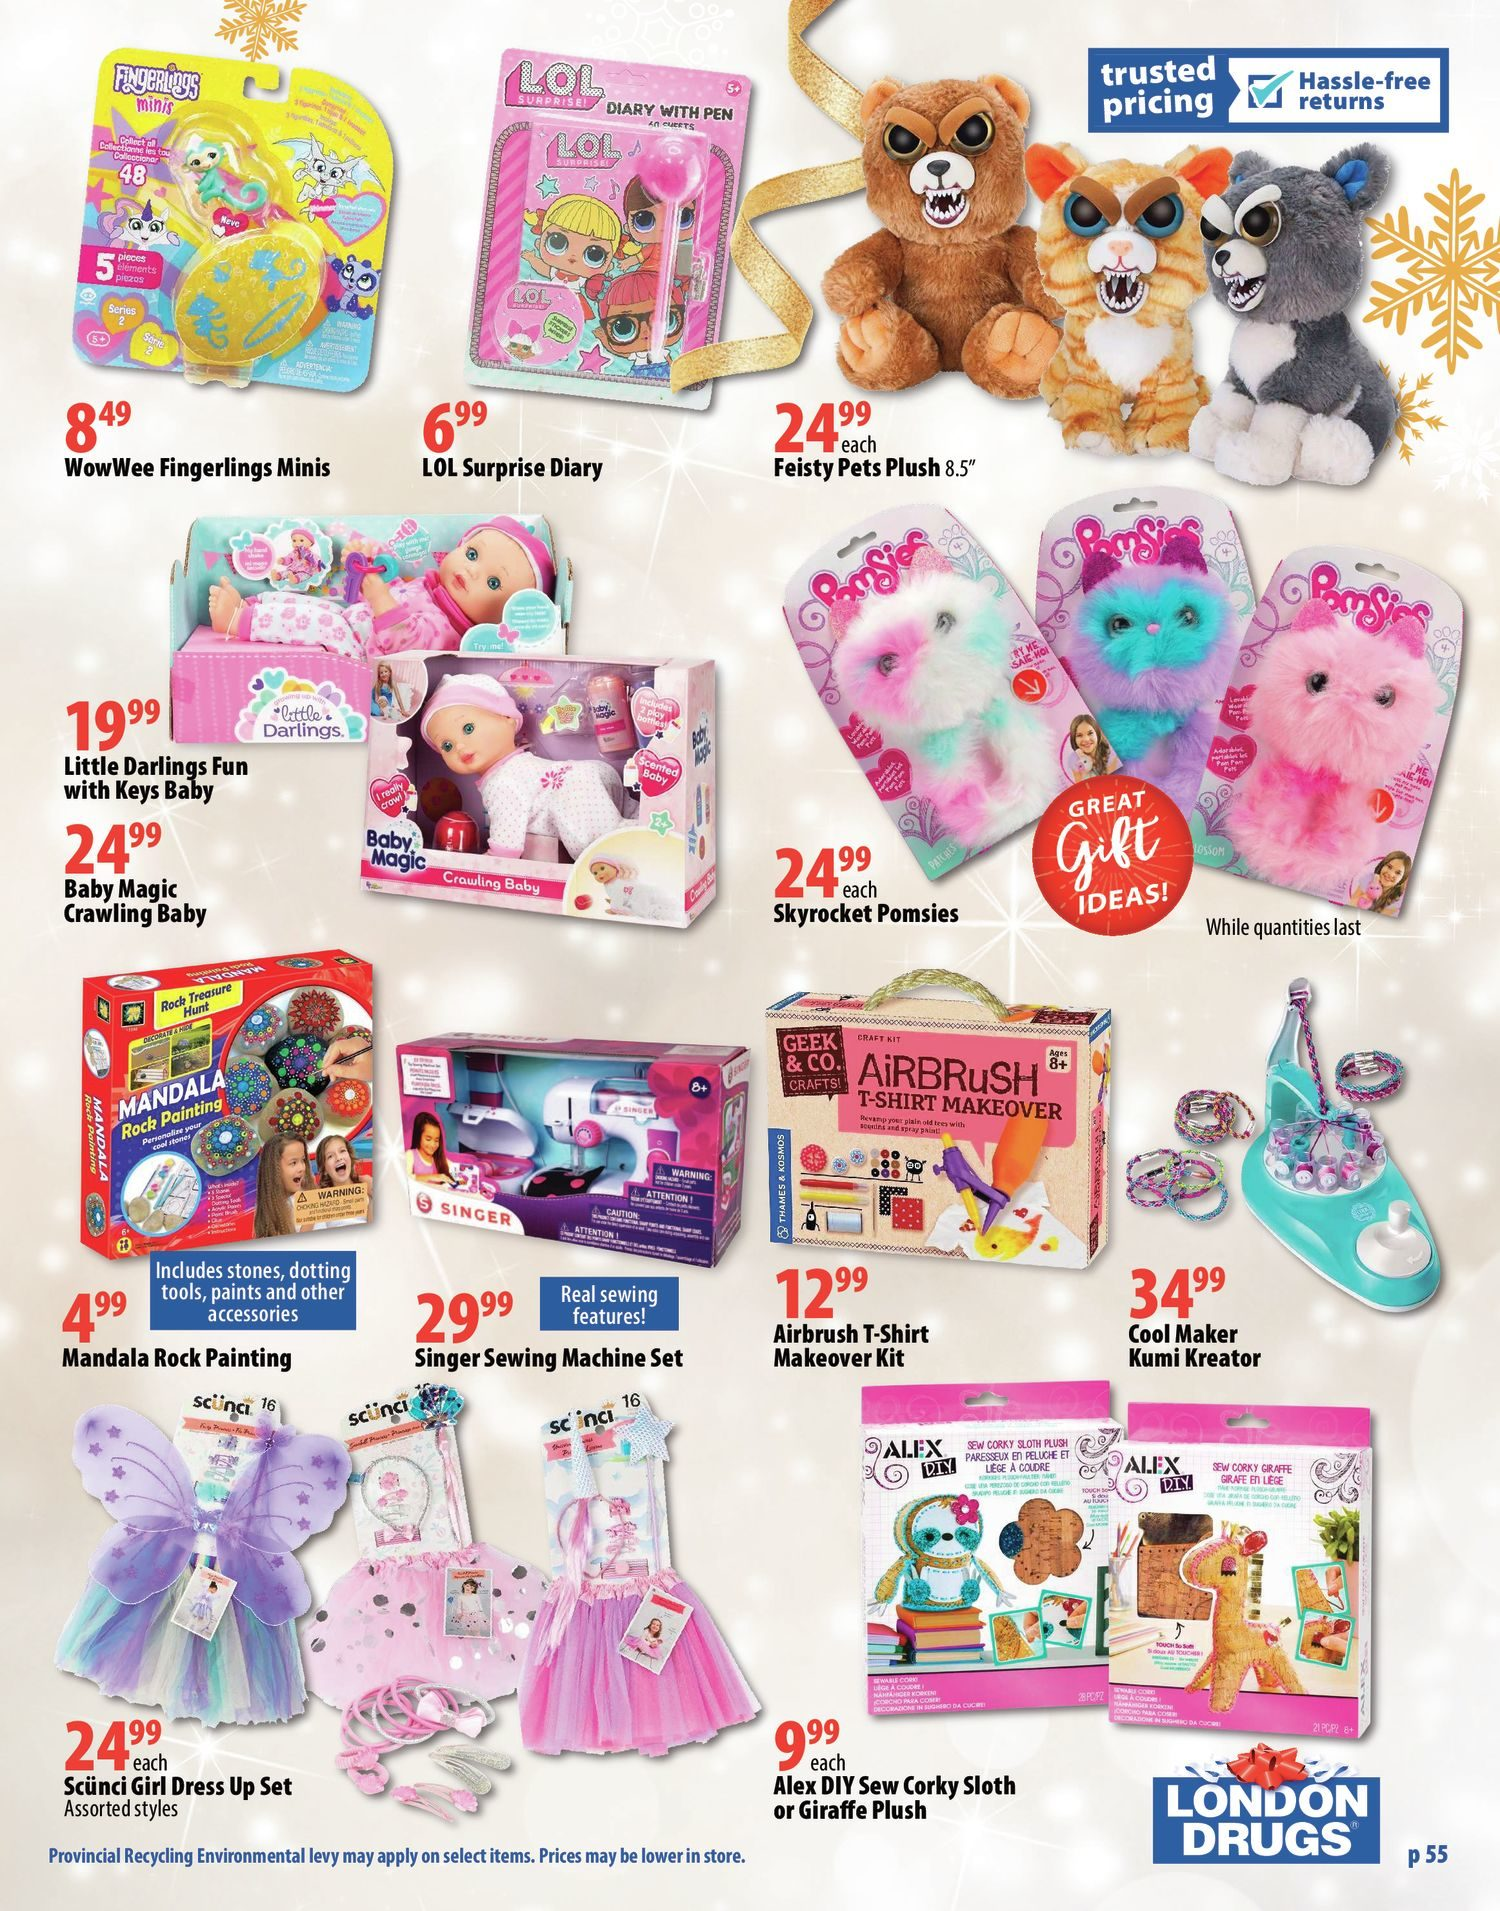 london drugs weekly flyer all your christmas gifts nov 16 24